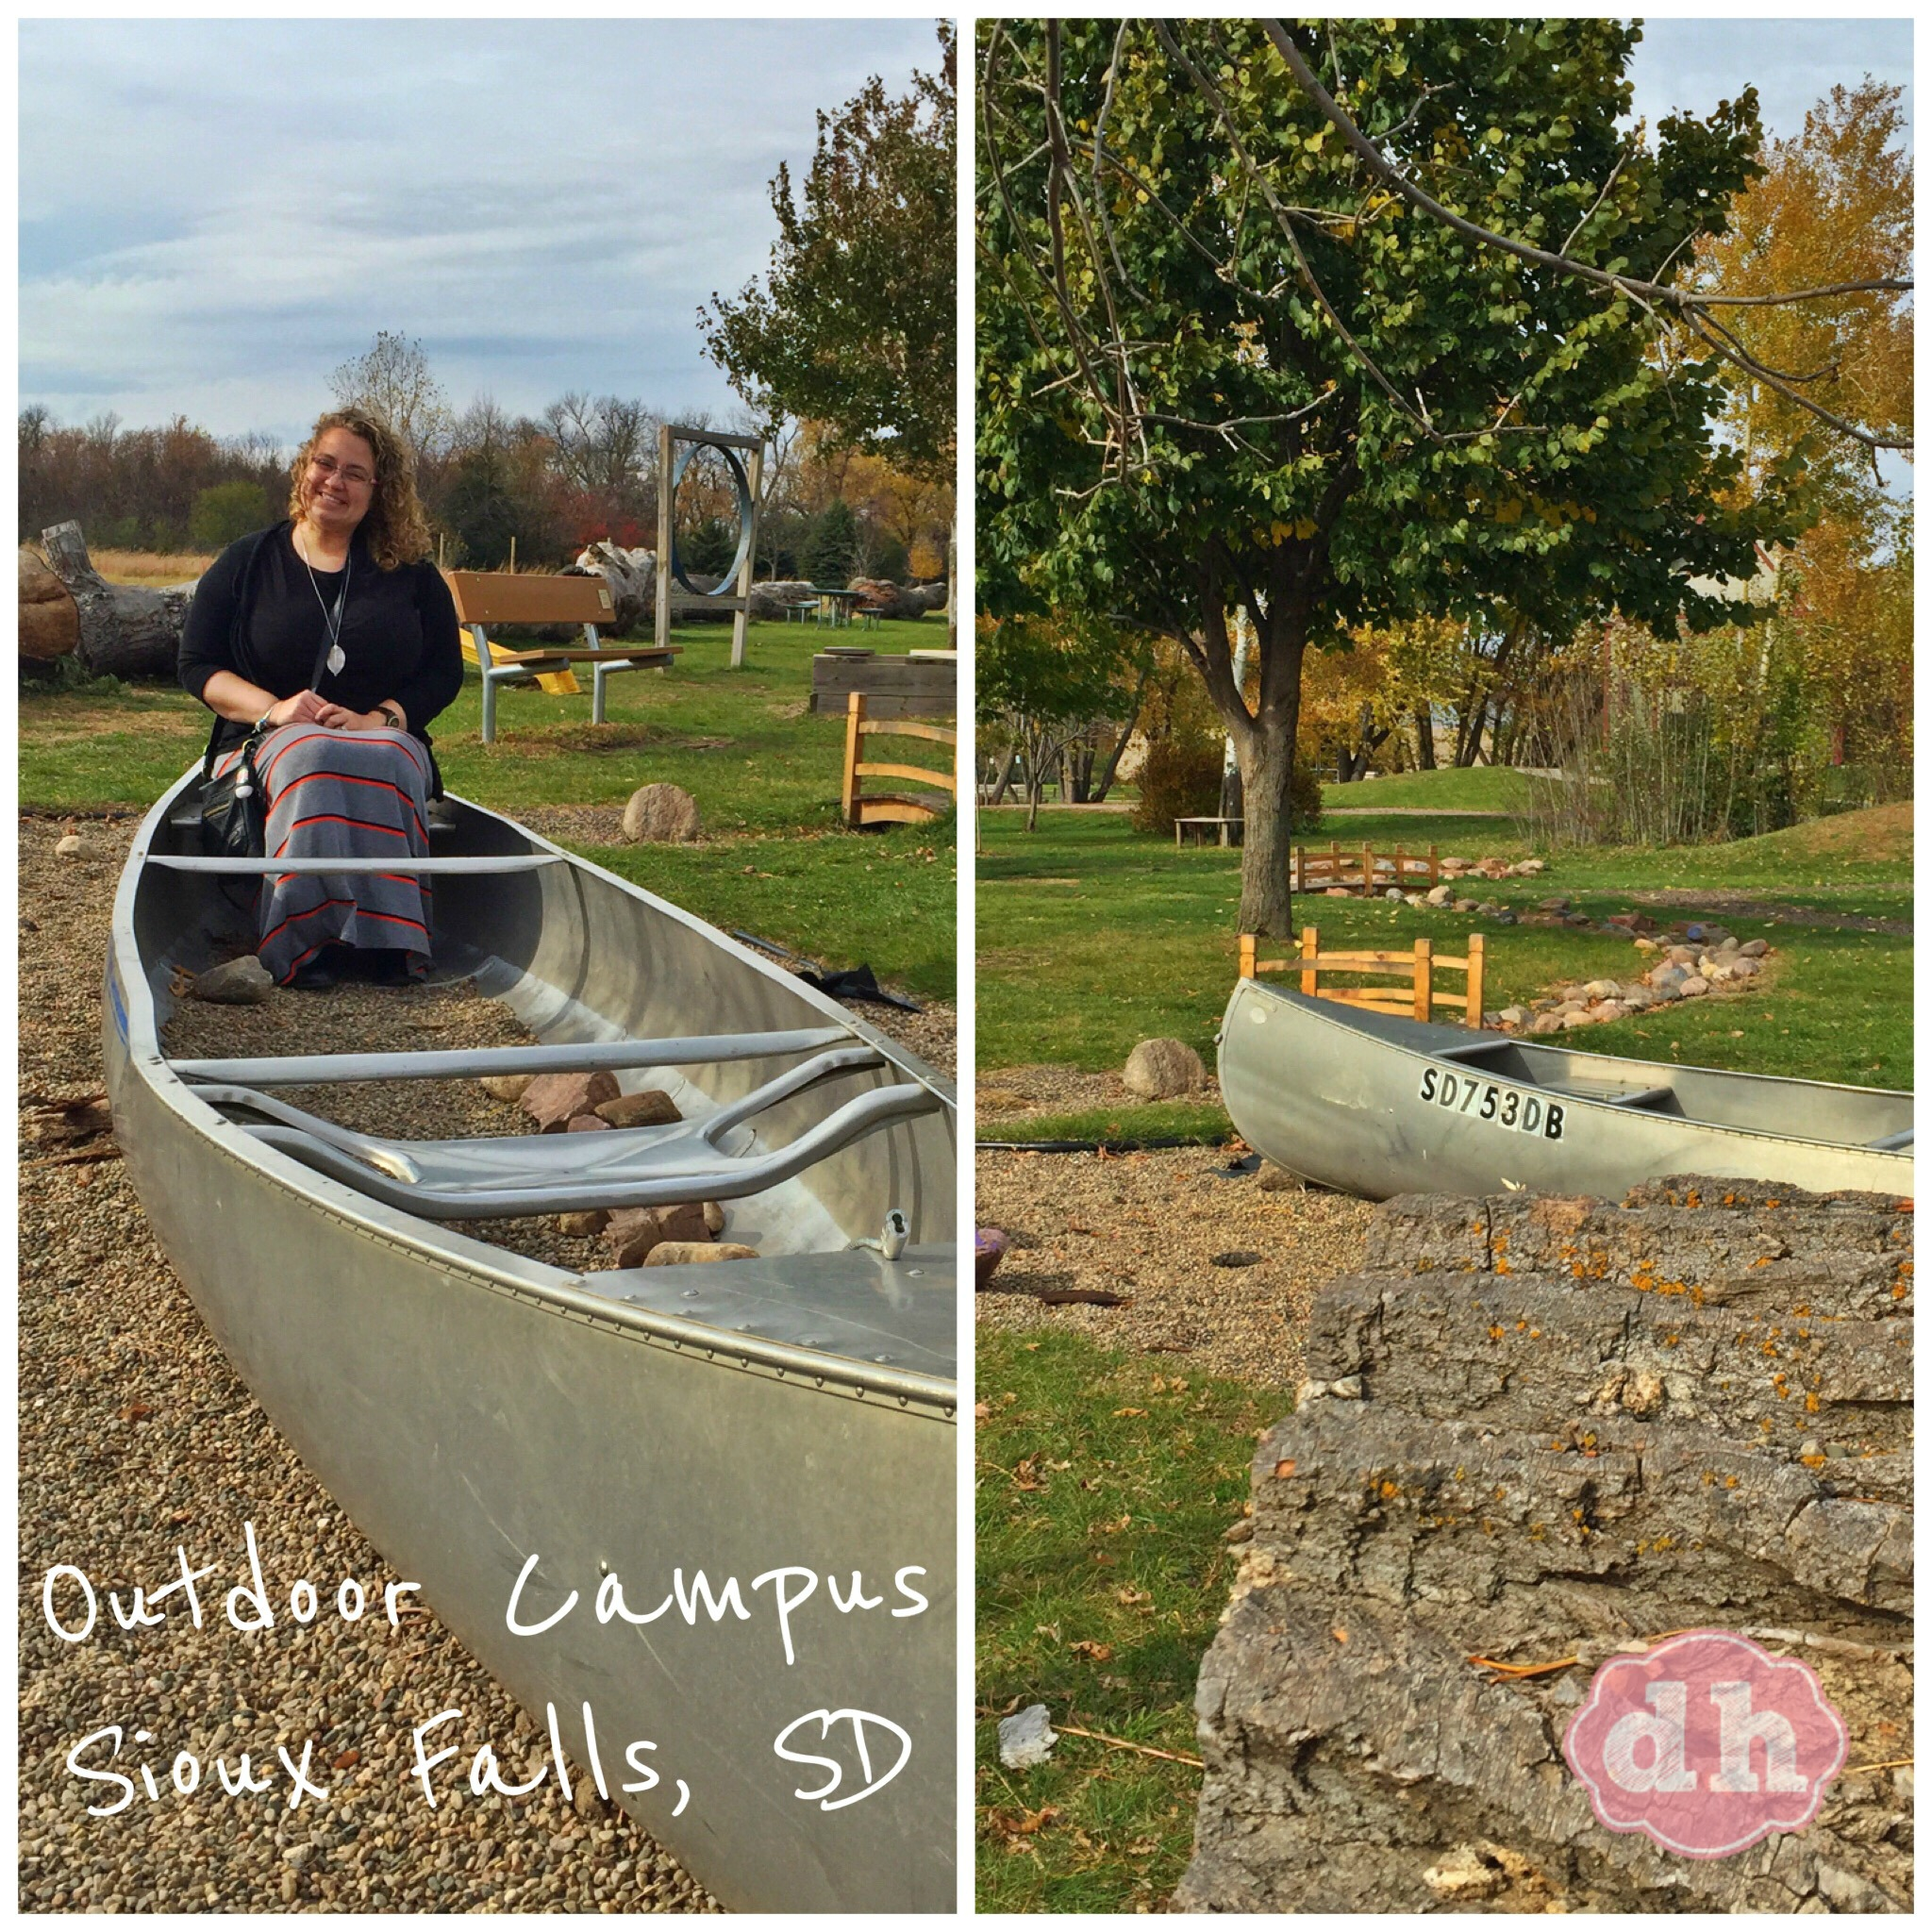 Outdoor Campus in Sioux Falls #VisitSiouxFalls #travel